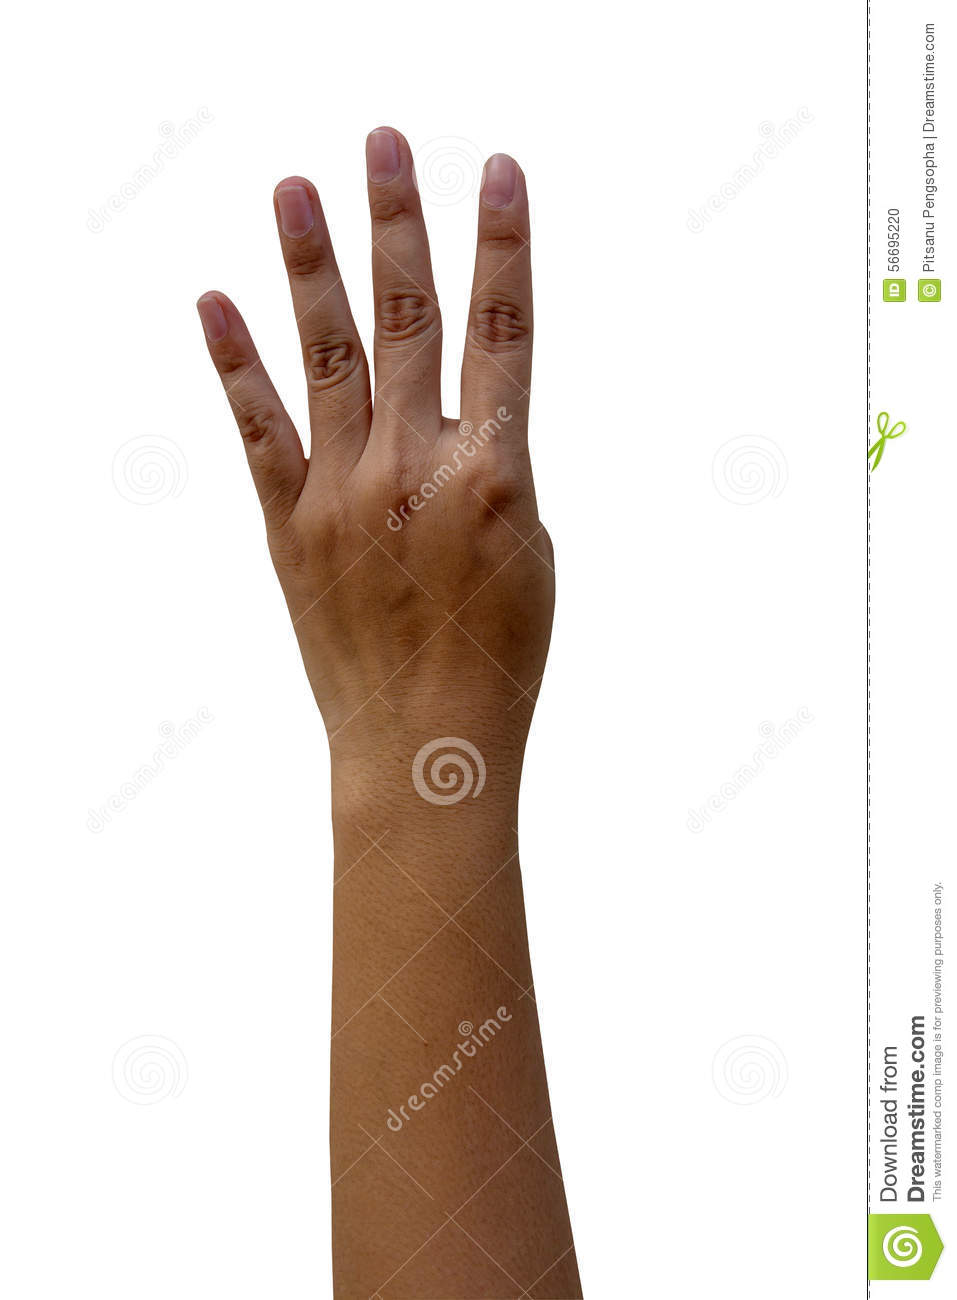 wrist and hand unlabeled diagram single voice coil wiring 20 blank pictures ideas on meta networks women isolated white background stock